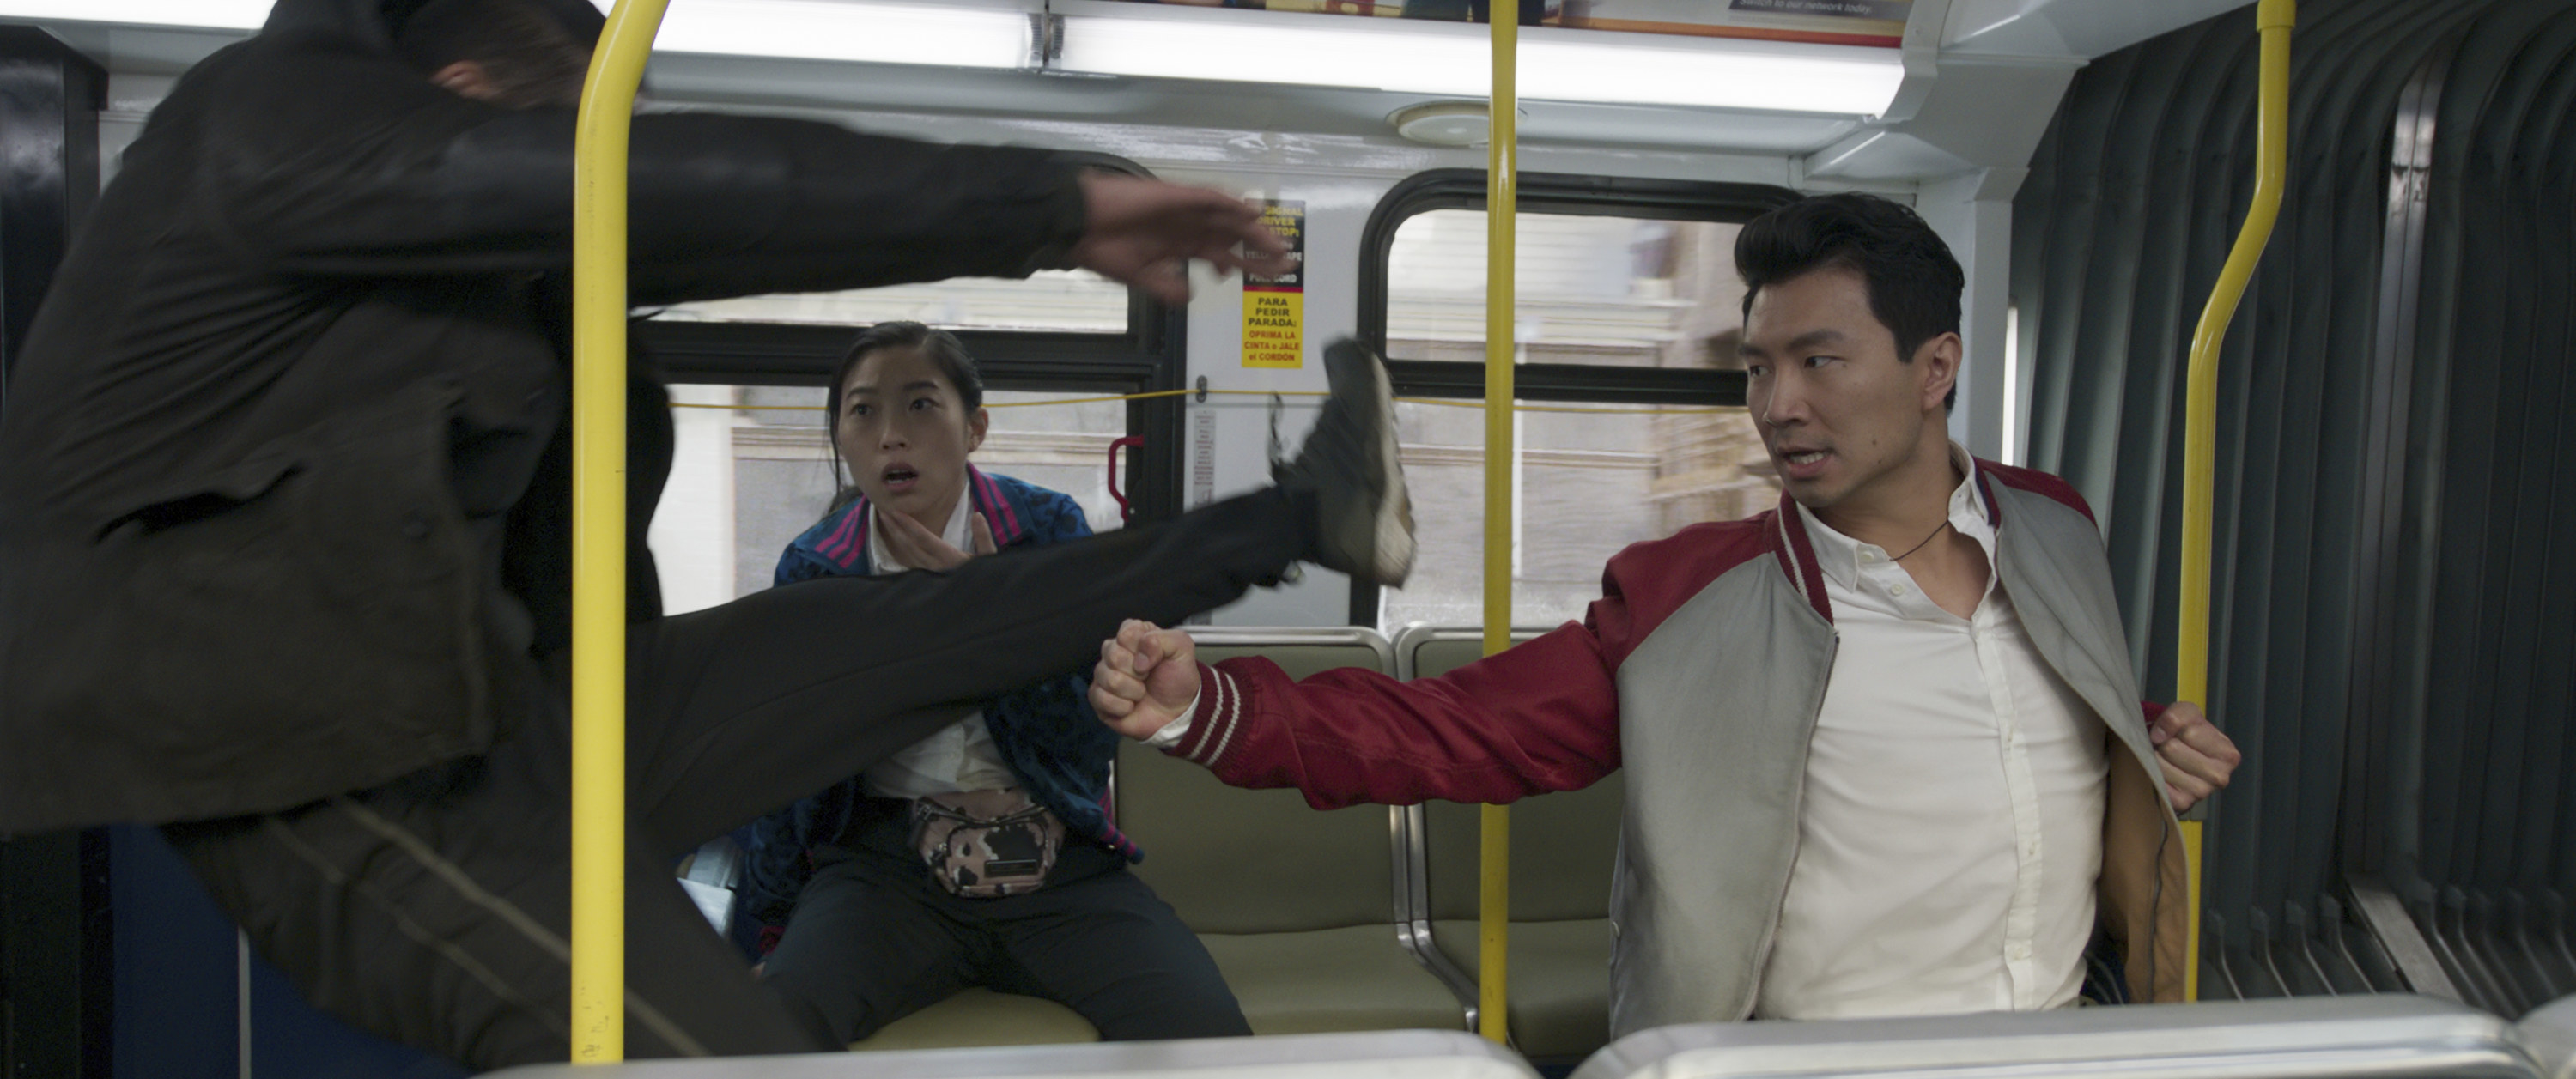 Shang-chi fighting on a moving bus